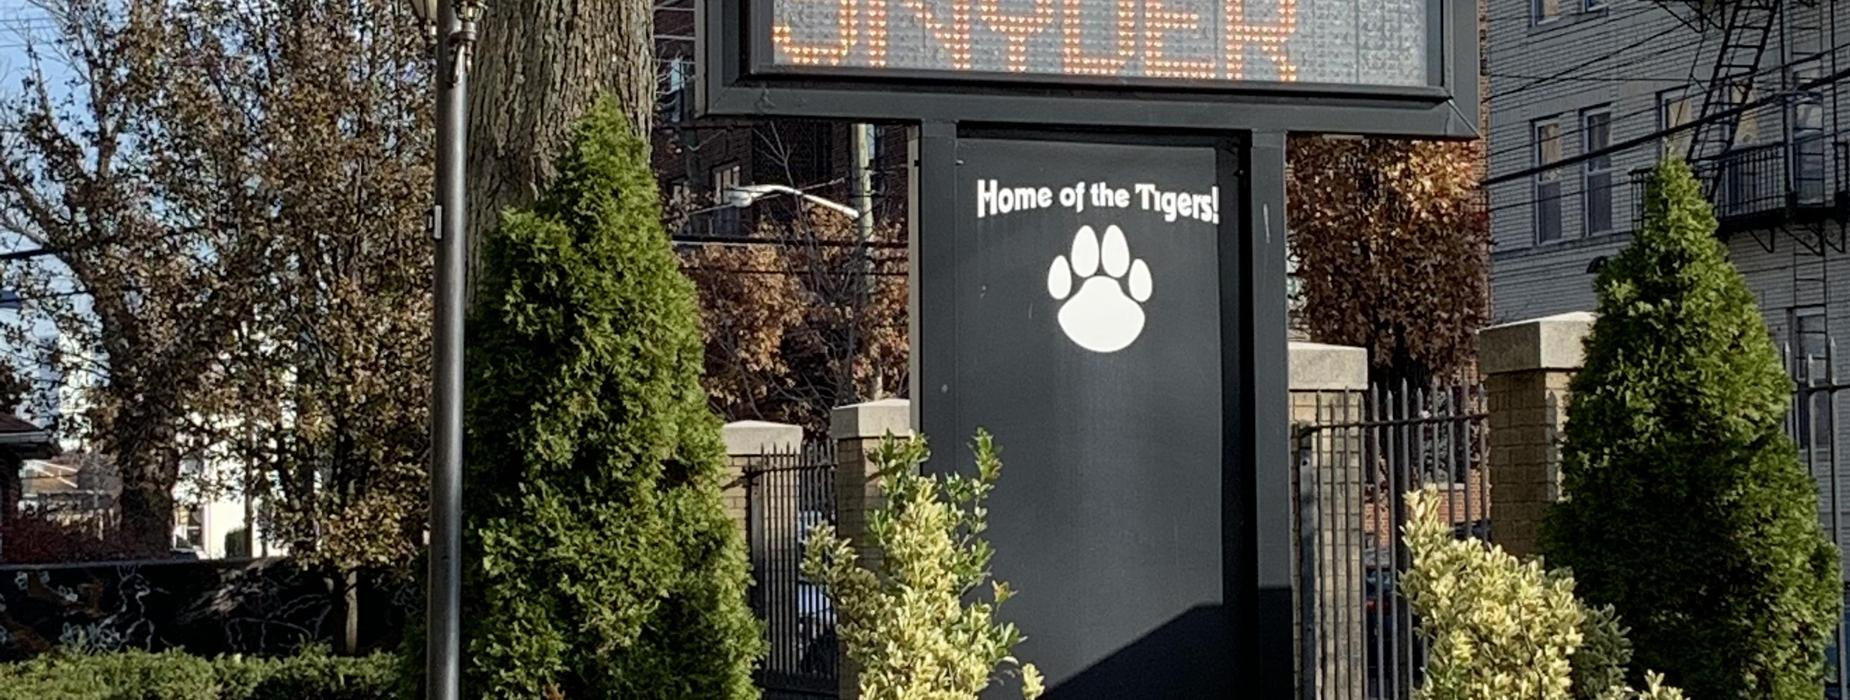 Snyder Home of the Tigers